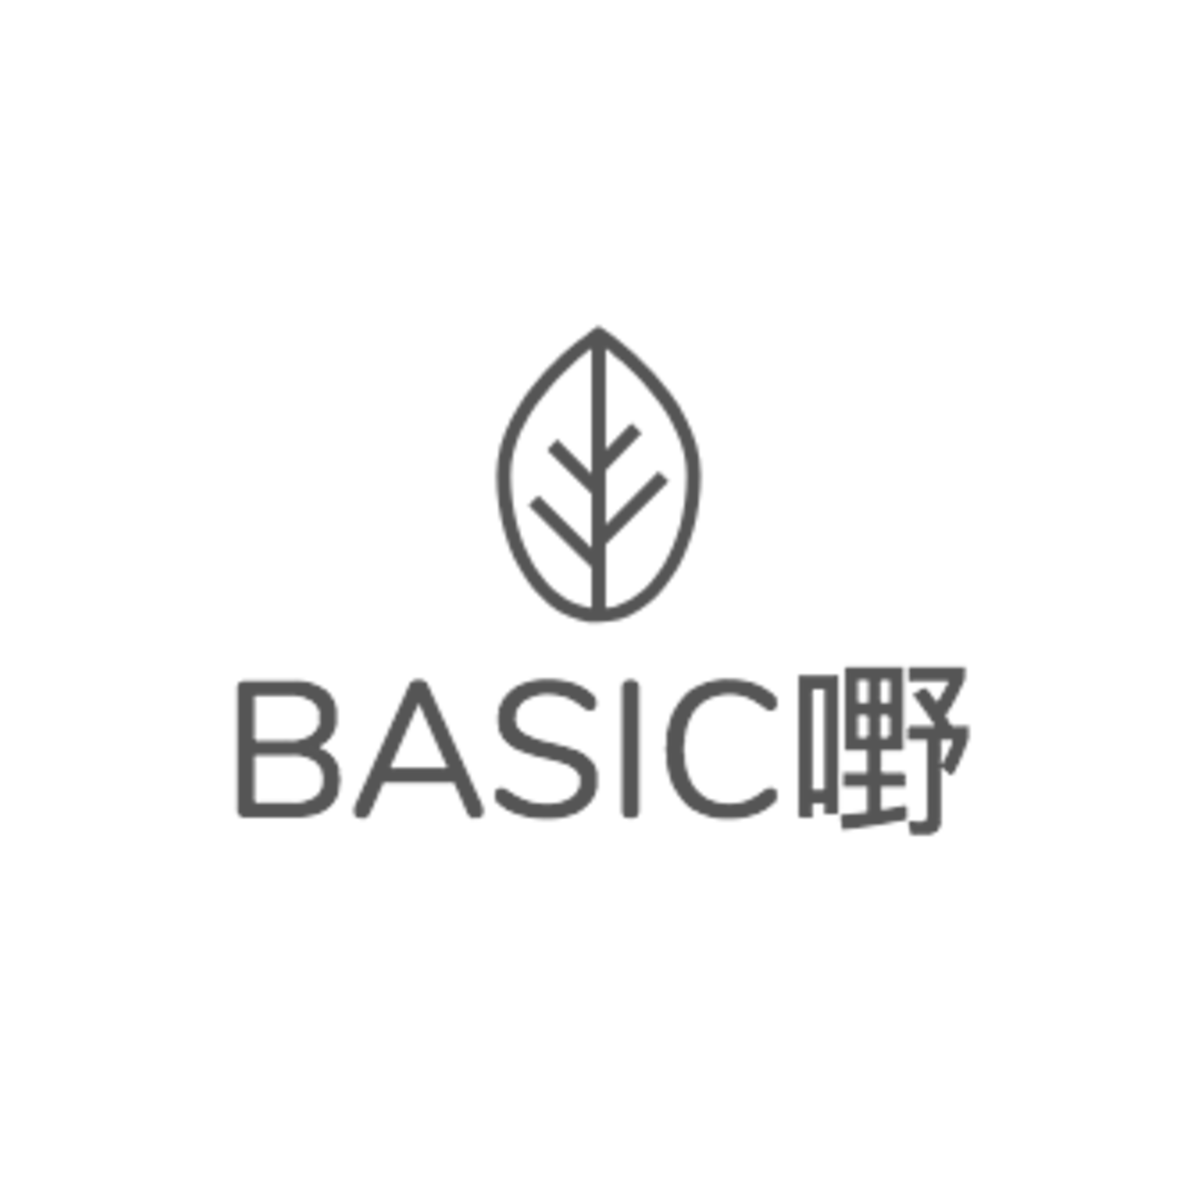 Copy-of-BASIC_-logo_4_1.png